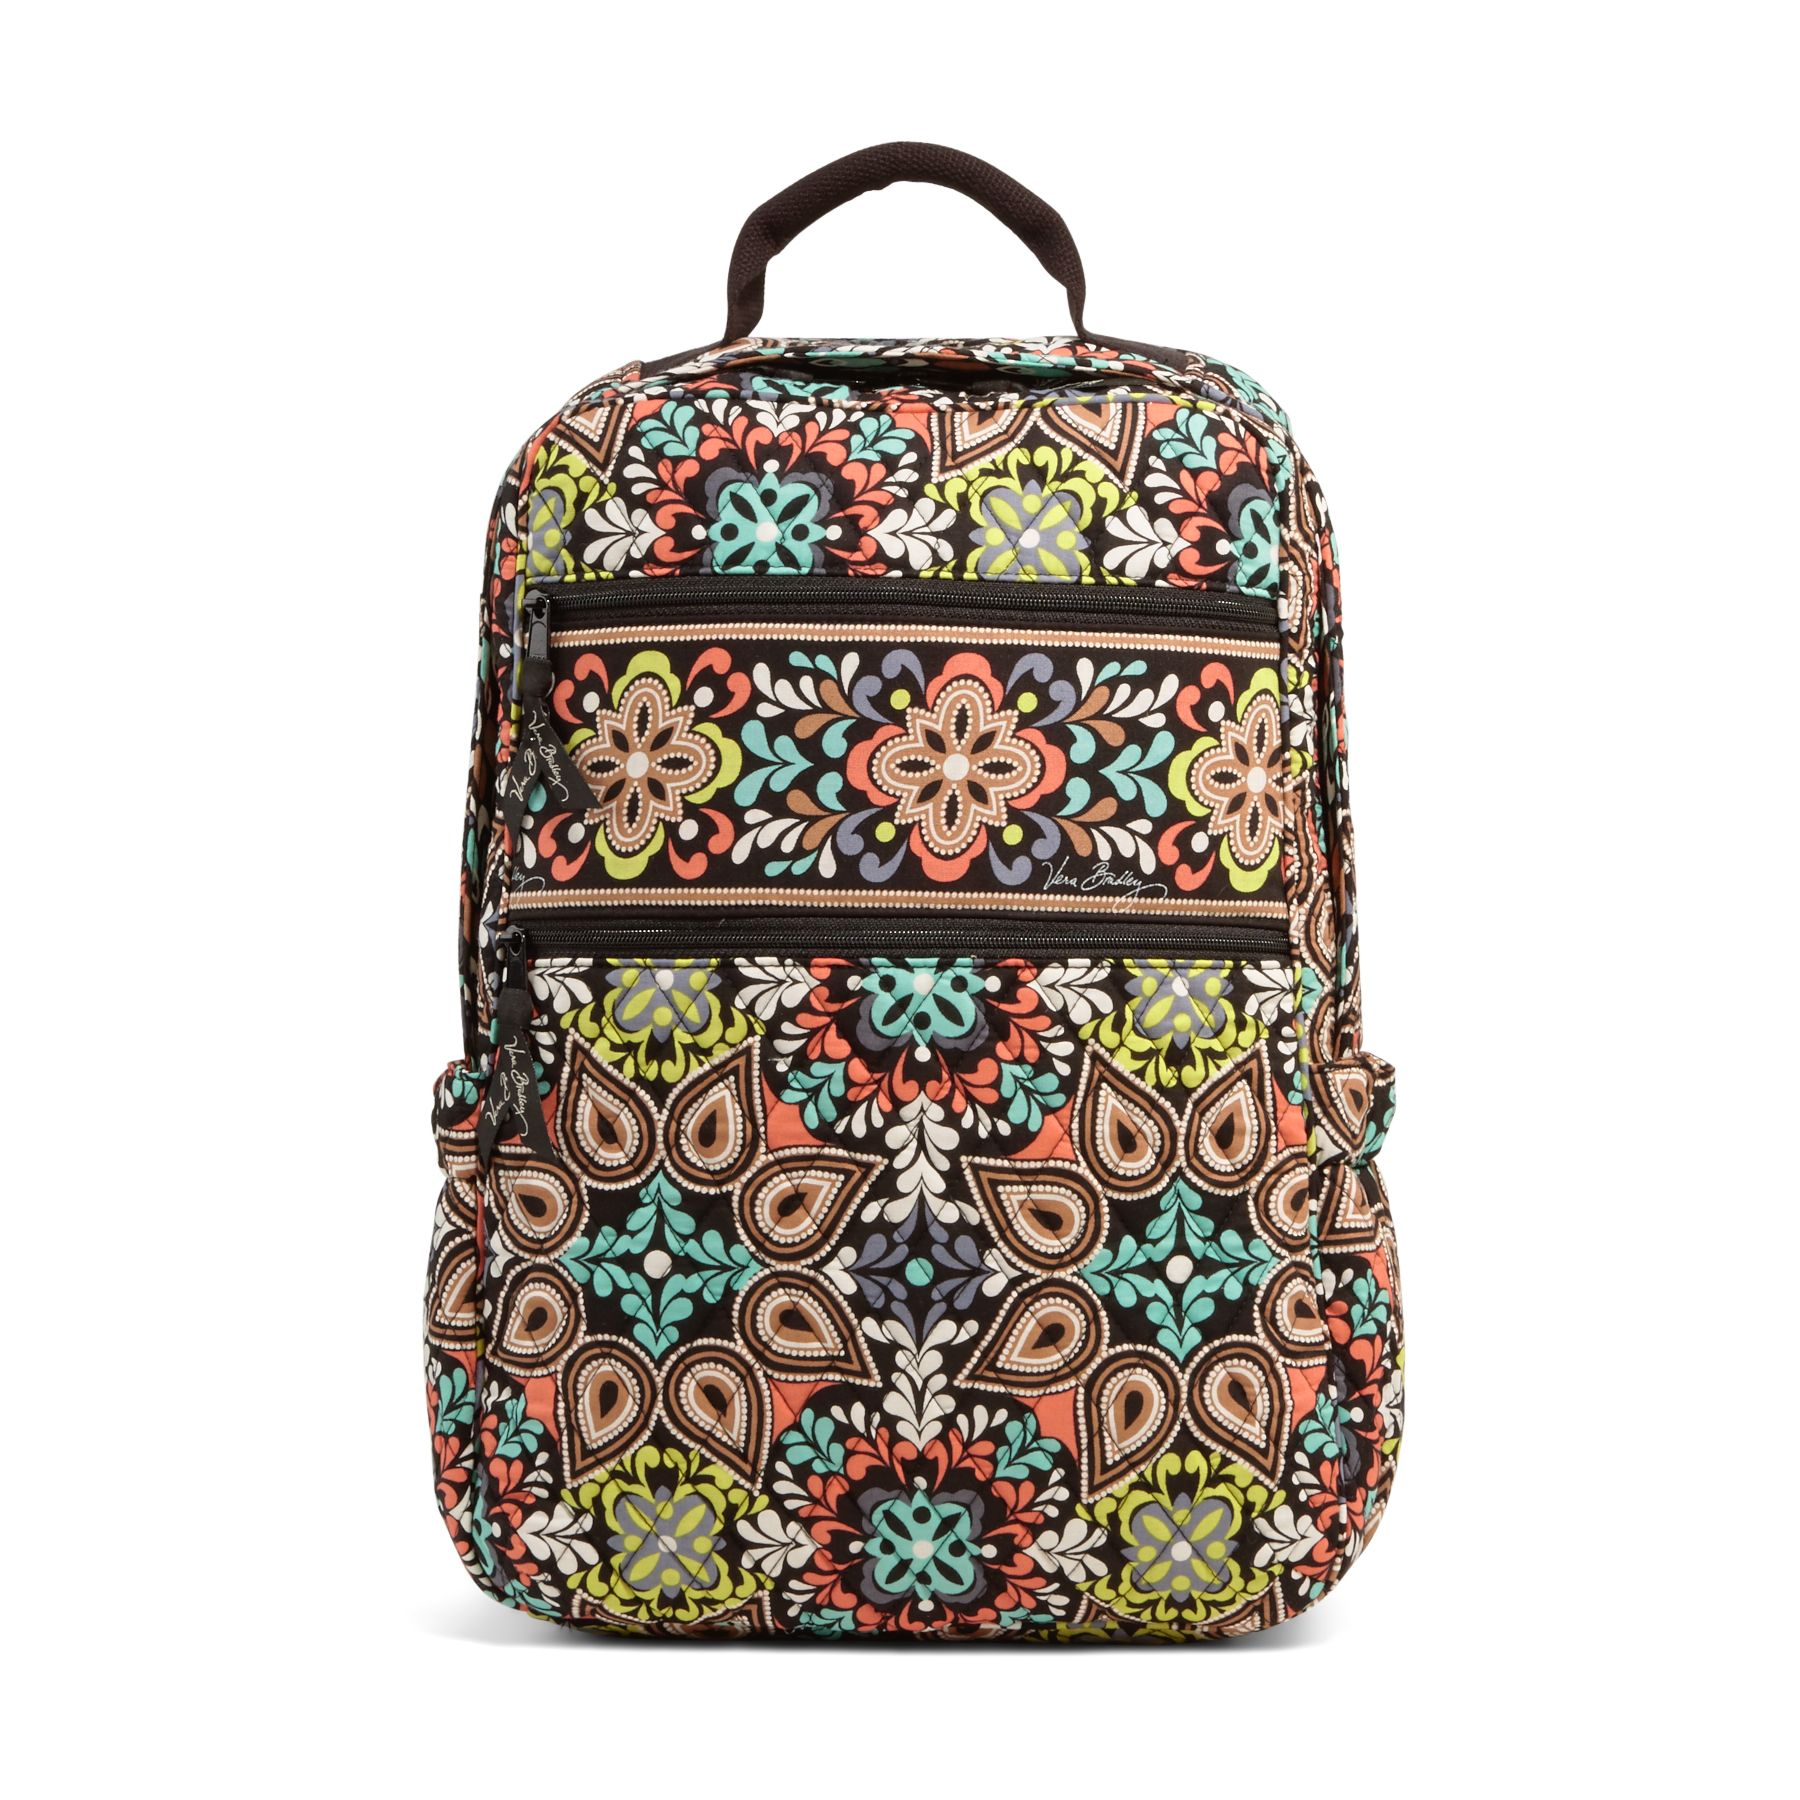 Vera Bradley Tech Backpack in Sierra